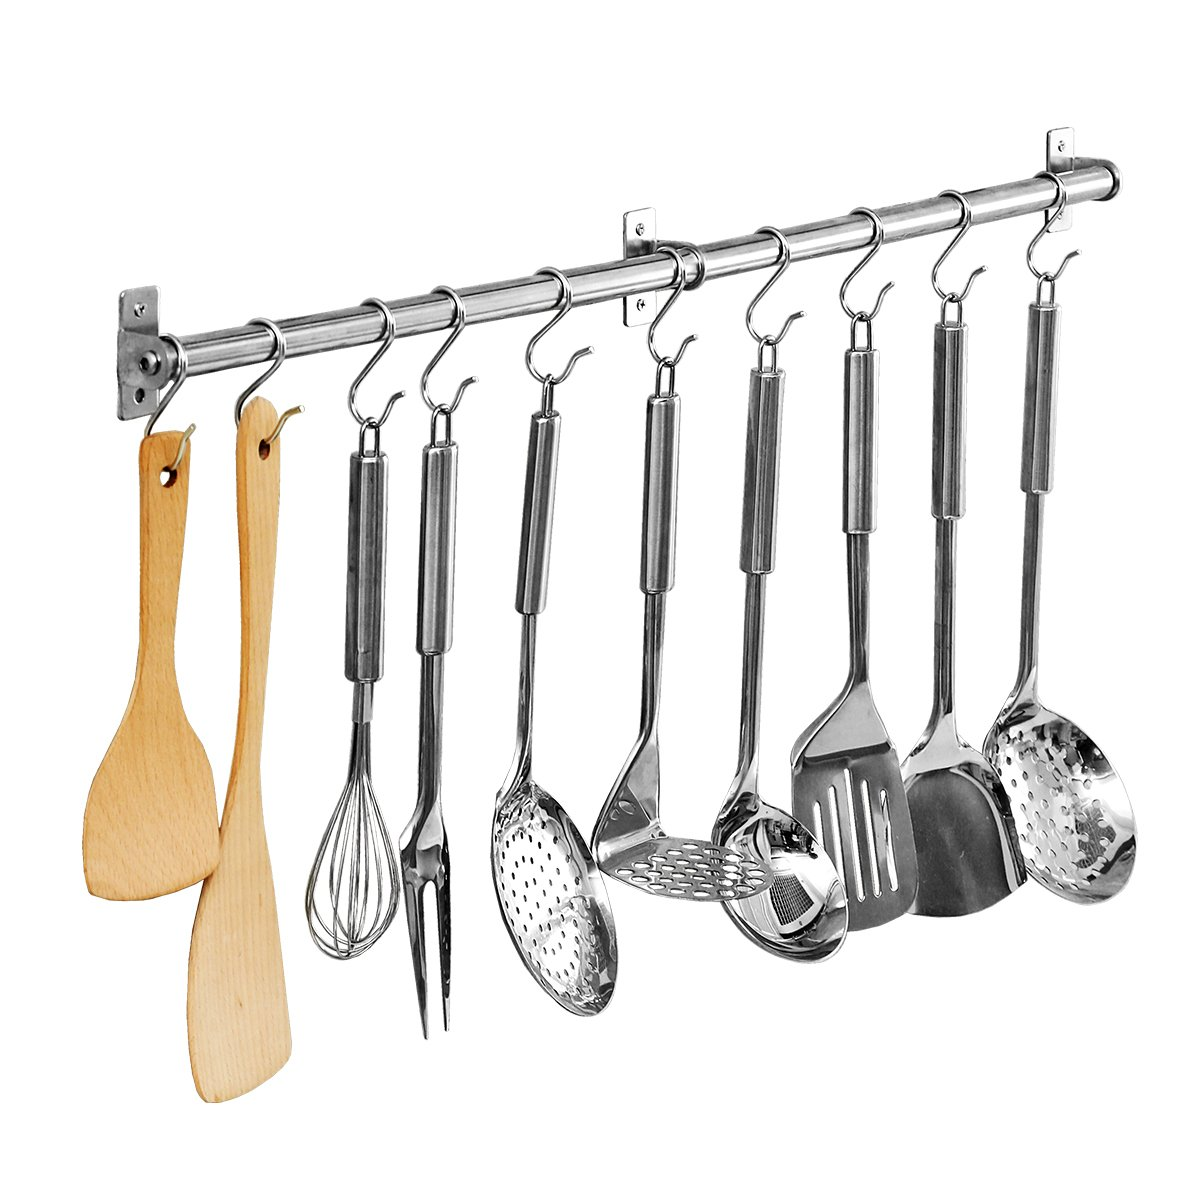 Creatwo Kitchen Rail with Hooks Wall Mounted Pot Pan Rack Organizer for Kitchen, Stainless Steel